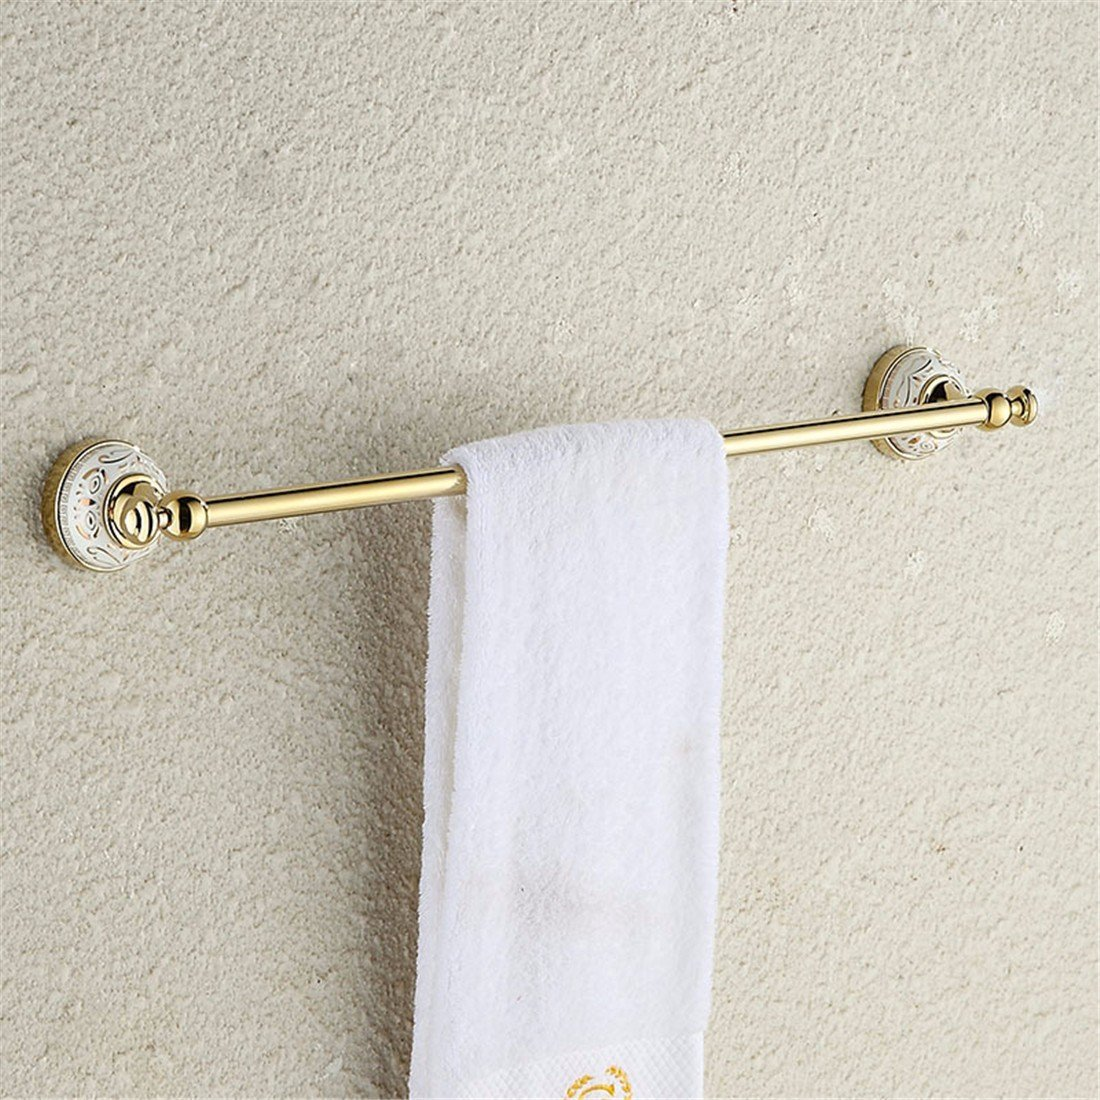 LAONA European style gold zinc alloy ceramic base, bathroom fittings, toilet paper rack, towel rack,Single rod